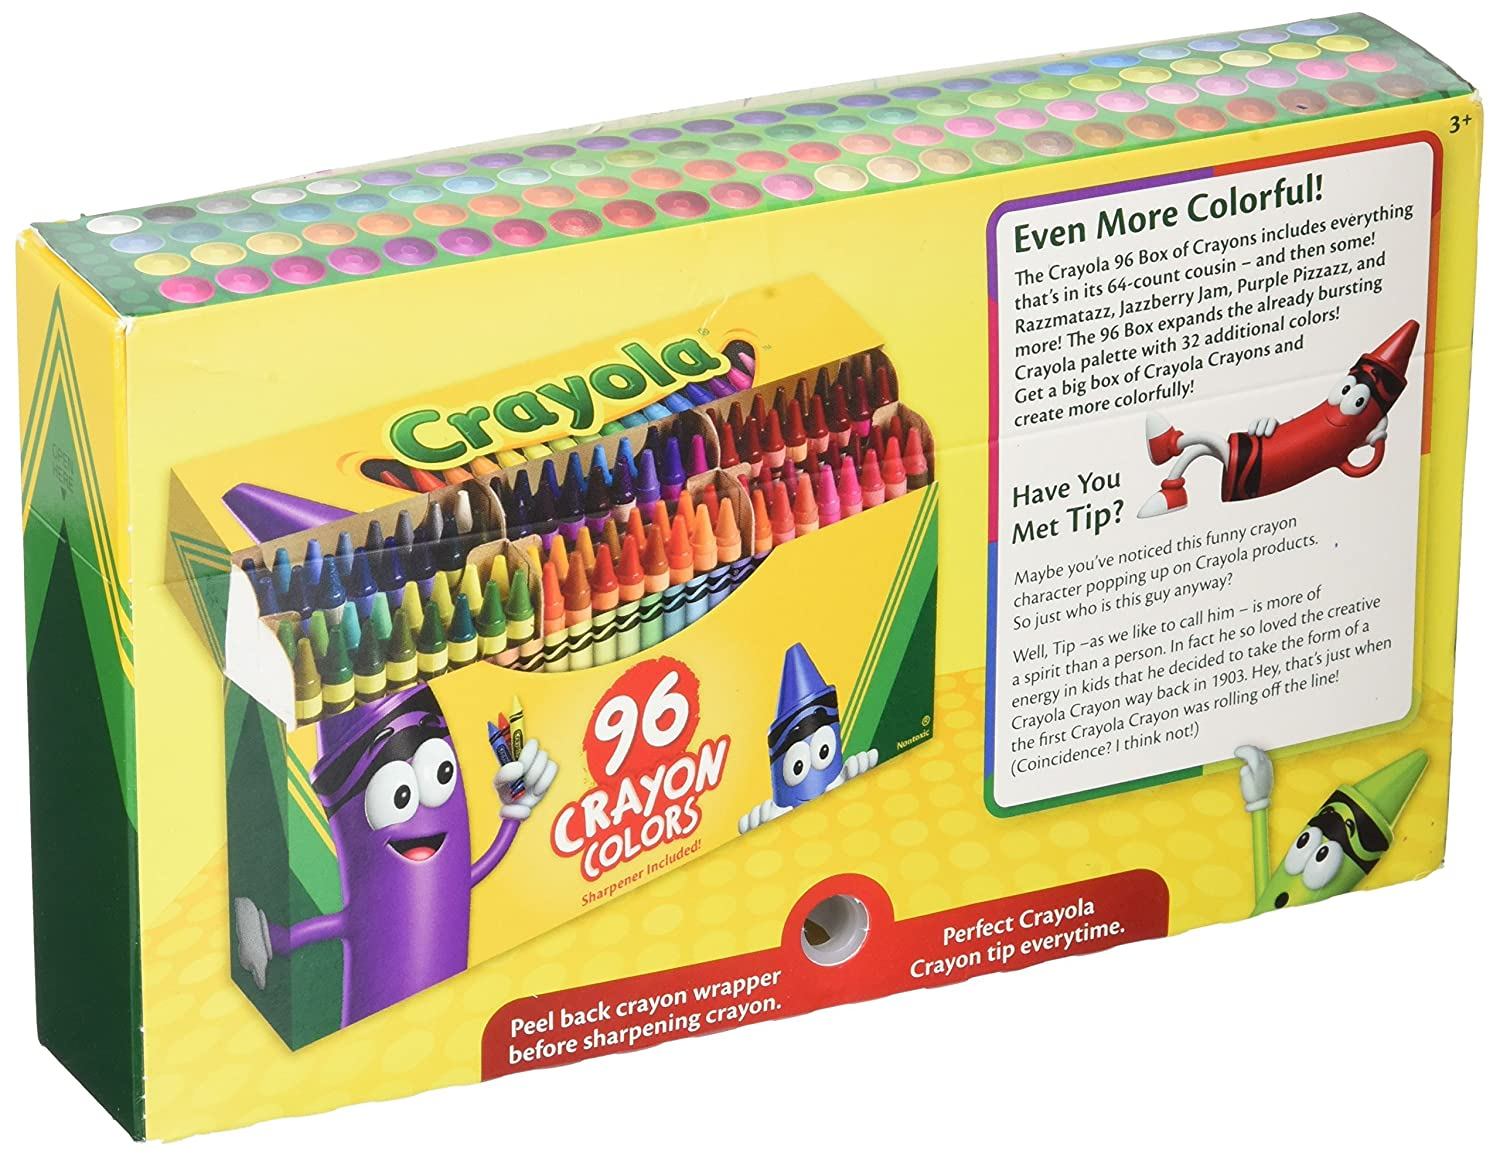 Image result for crayola box with sharpener